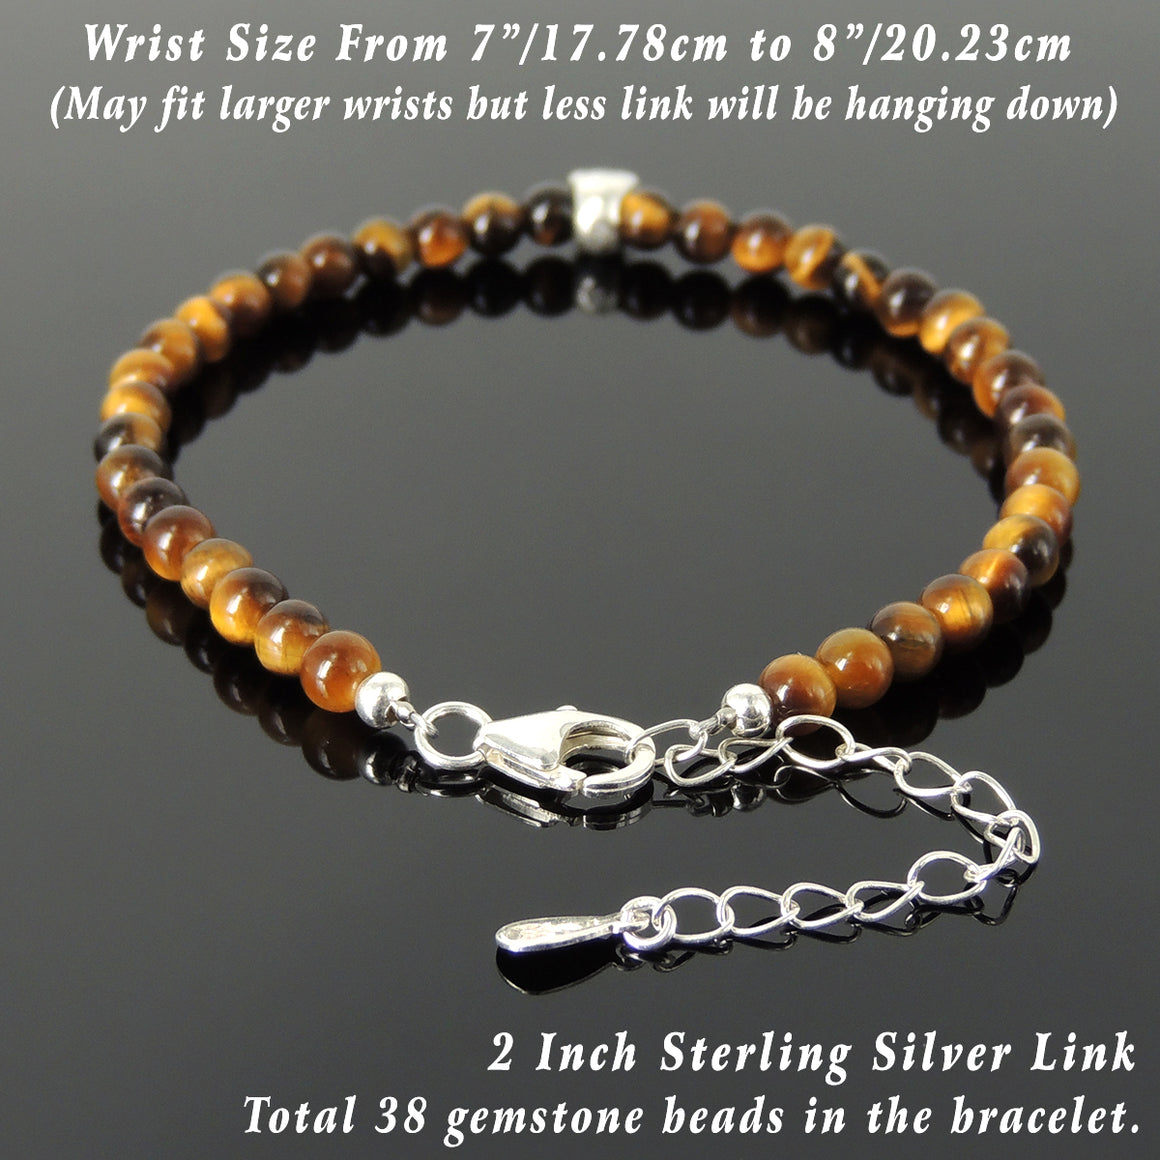 4mm Brown Tiger Eye Healing Gemstone Bracelet with S925 Sterling Silver Skull Protection Bead, Chain, & Clasp - Handmade by Gem & Silver BR1322